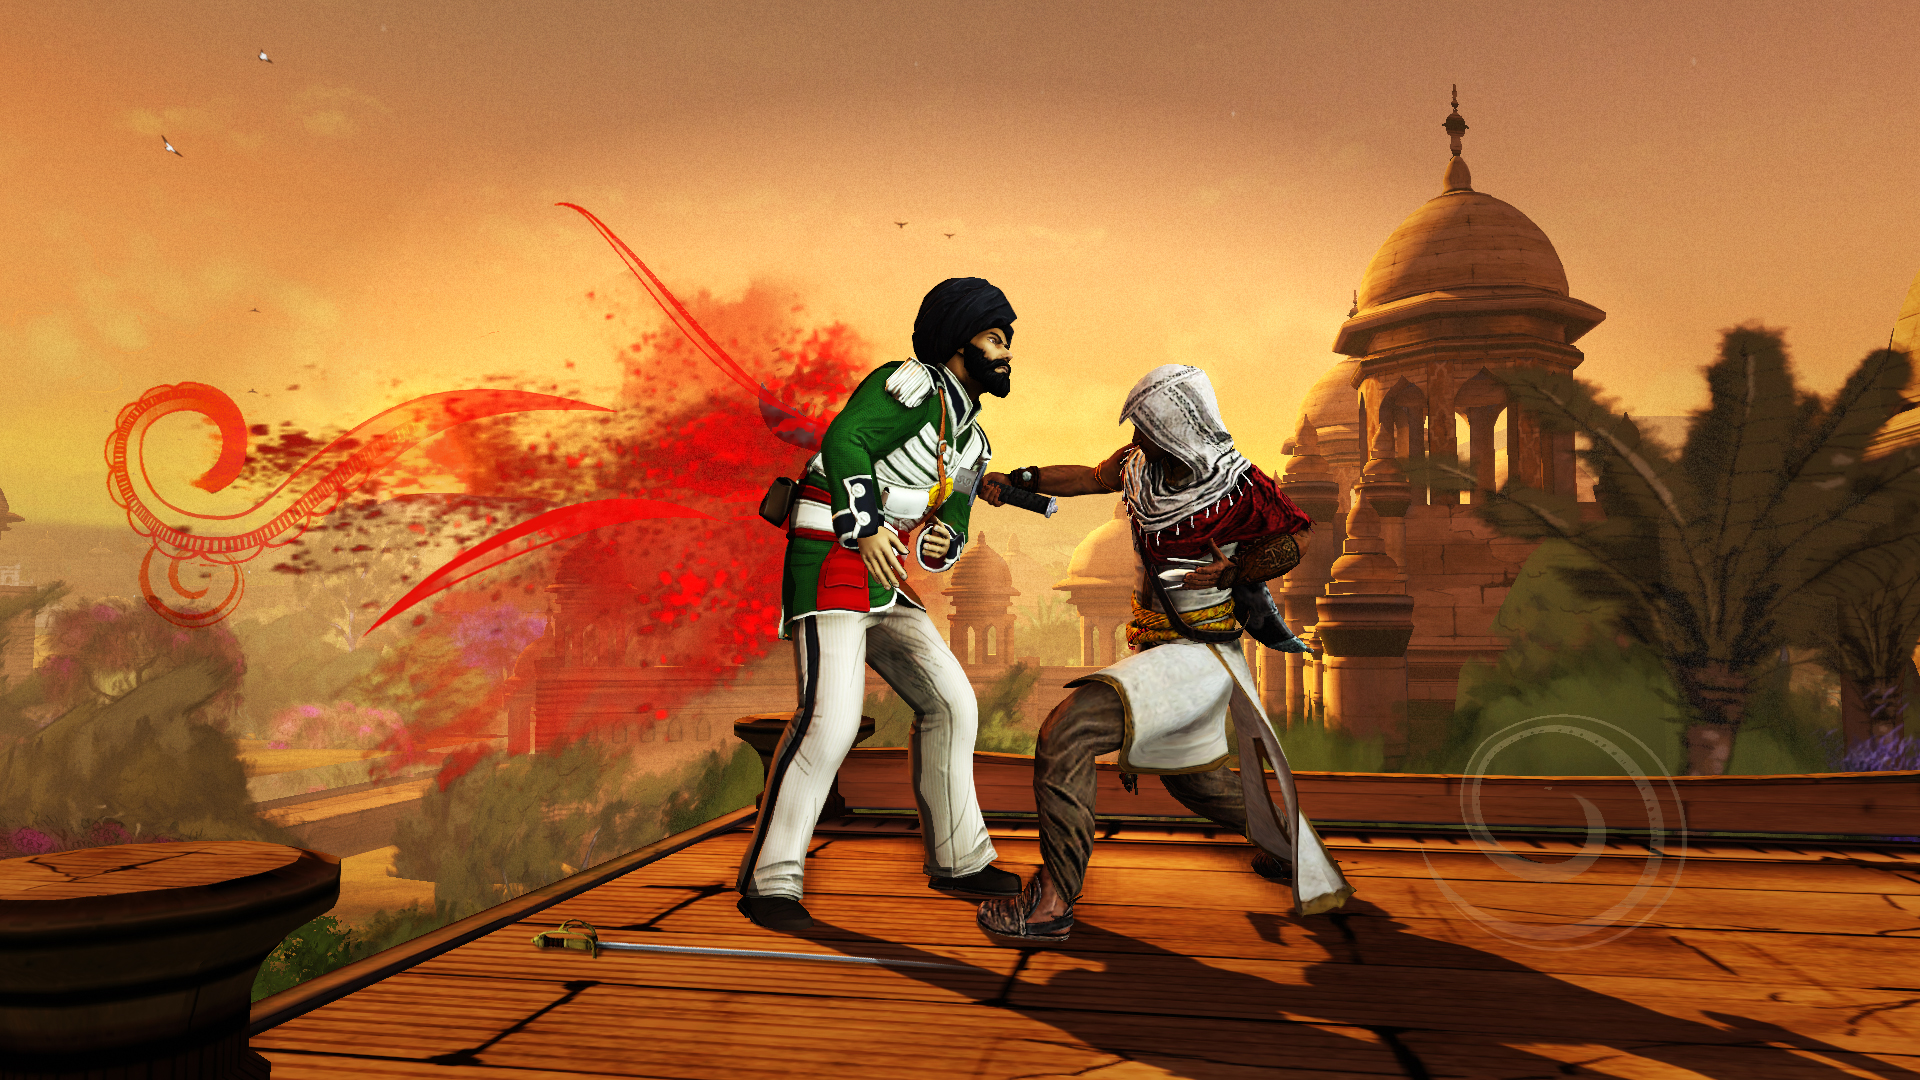 Link Tải Game Assassin's Creed Chronicles India Miễn Phí